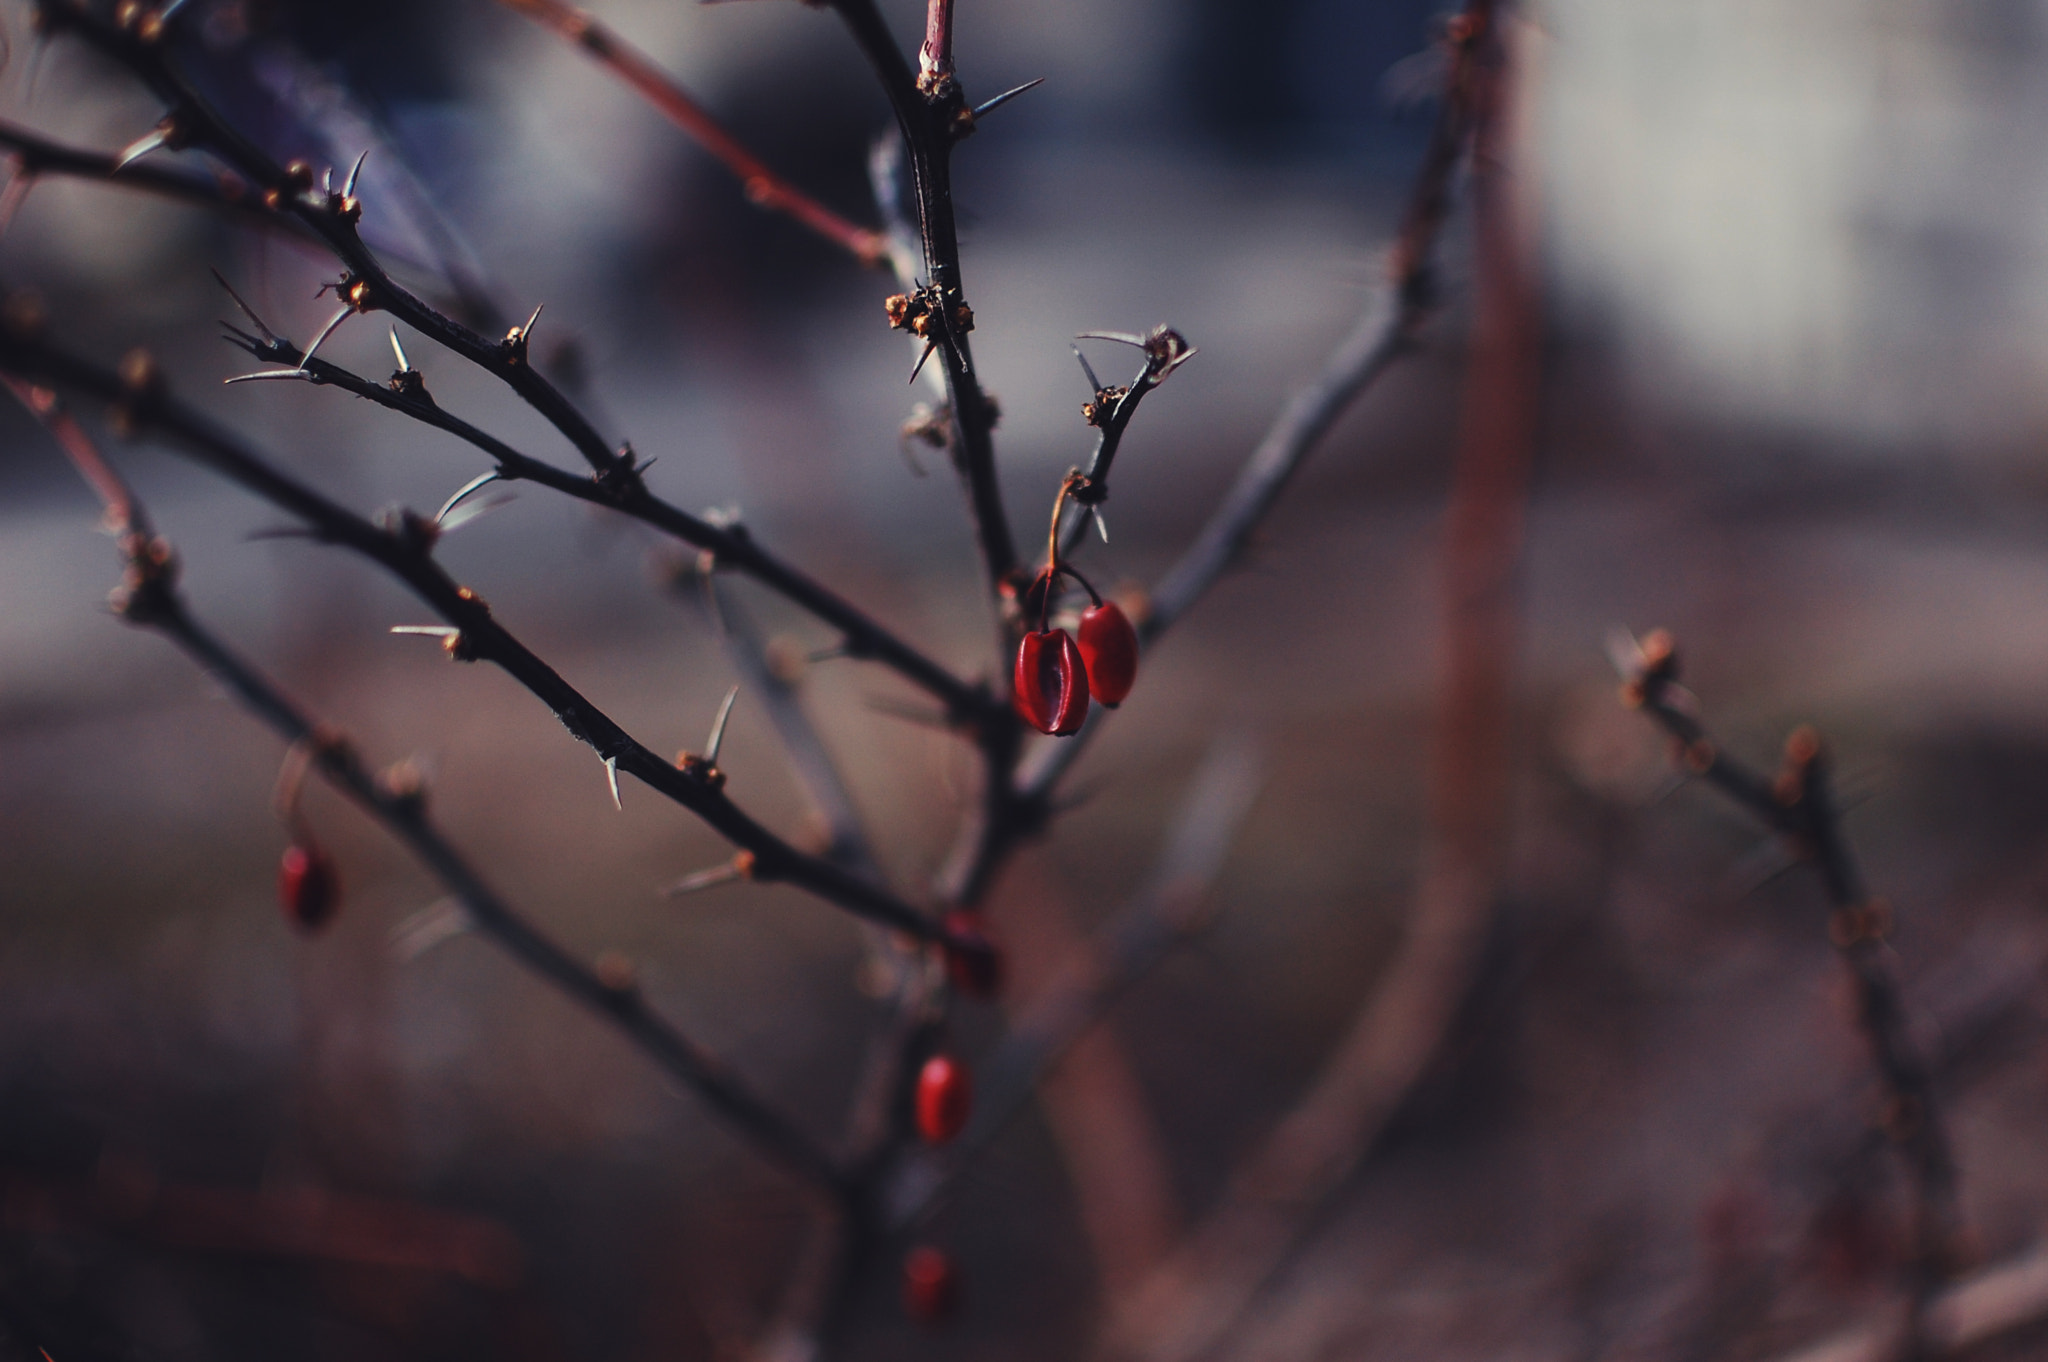 Photograph Thorns by Allana Mayer on 500px